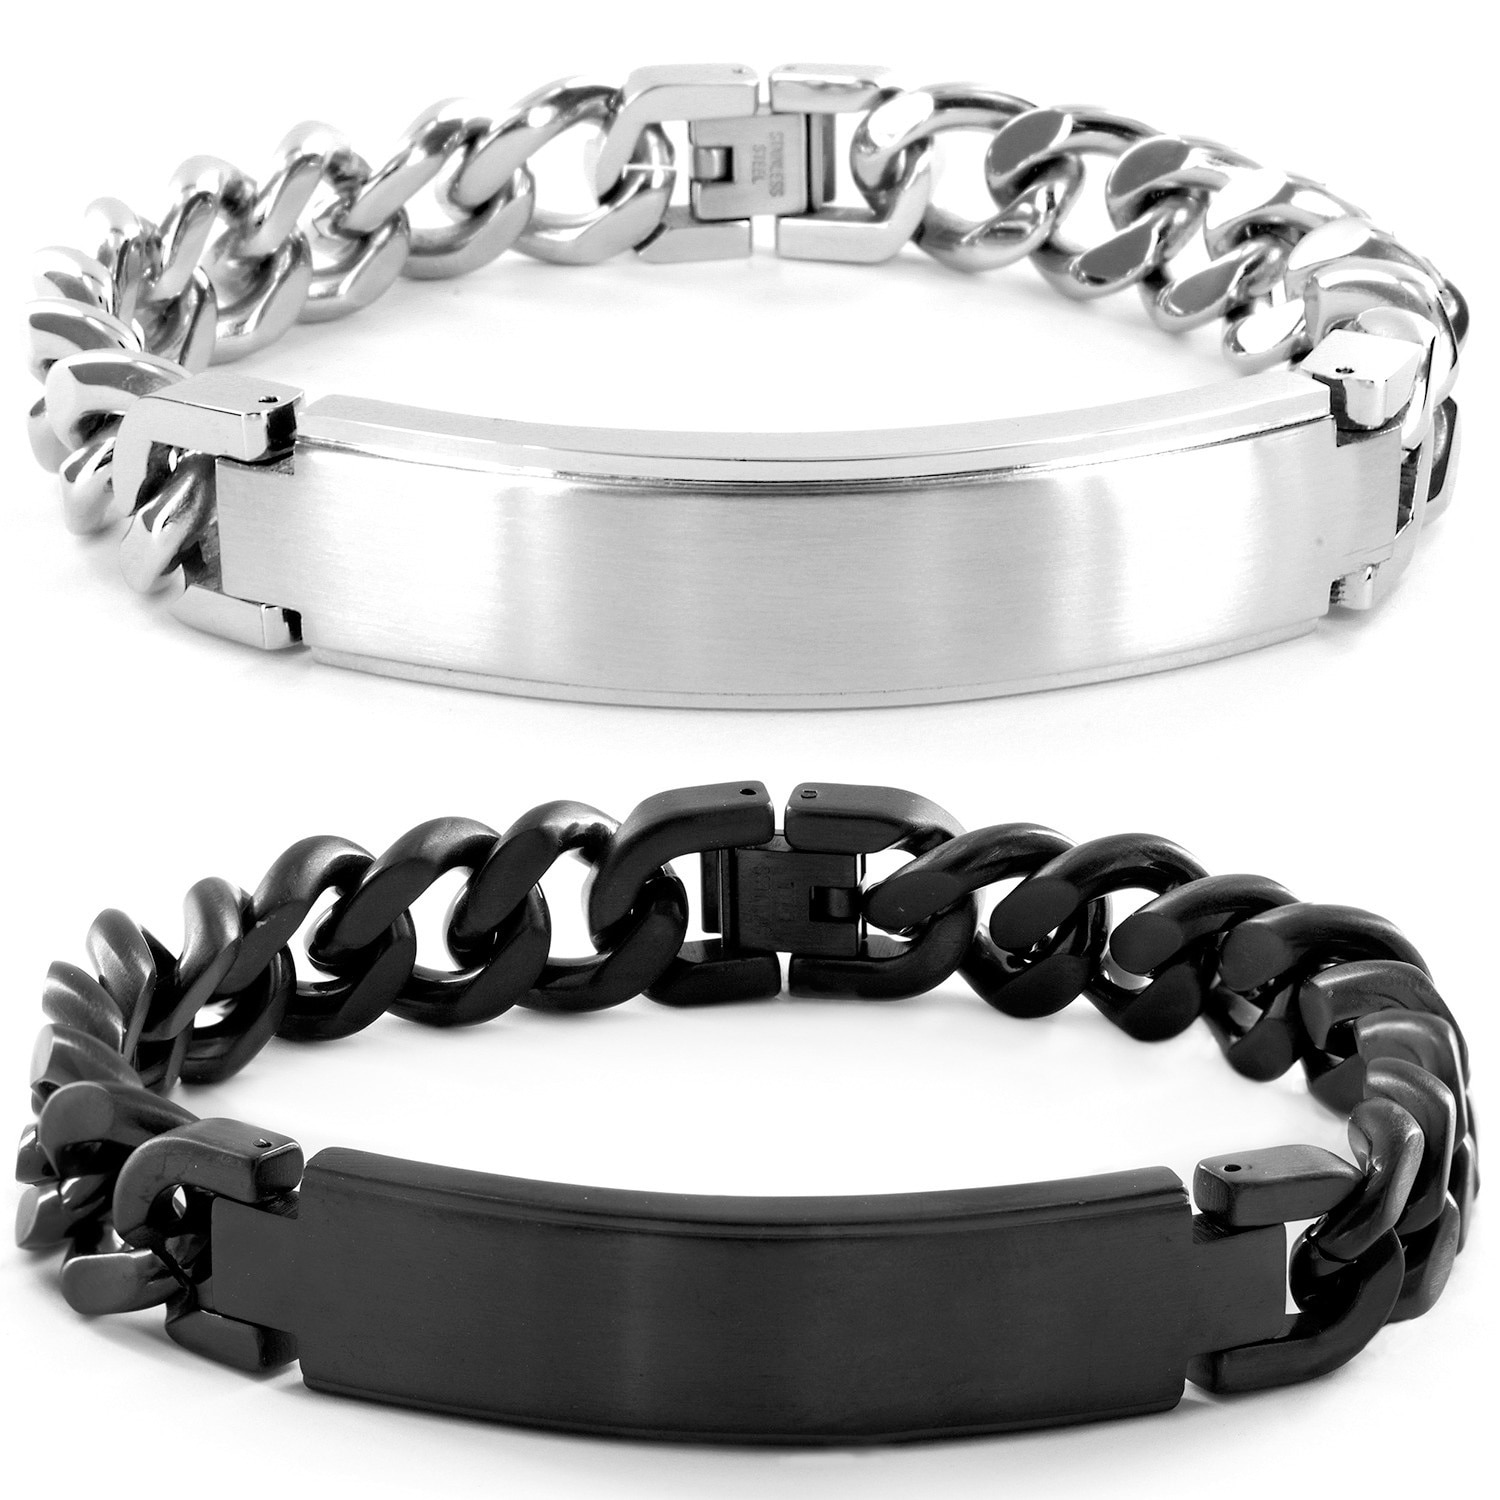 medical steel az jewelry bling identification stainless abb sbr id bracelet